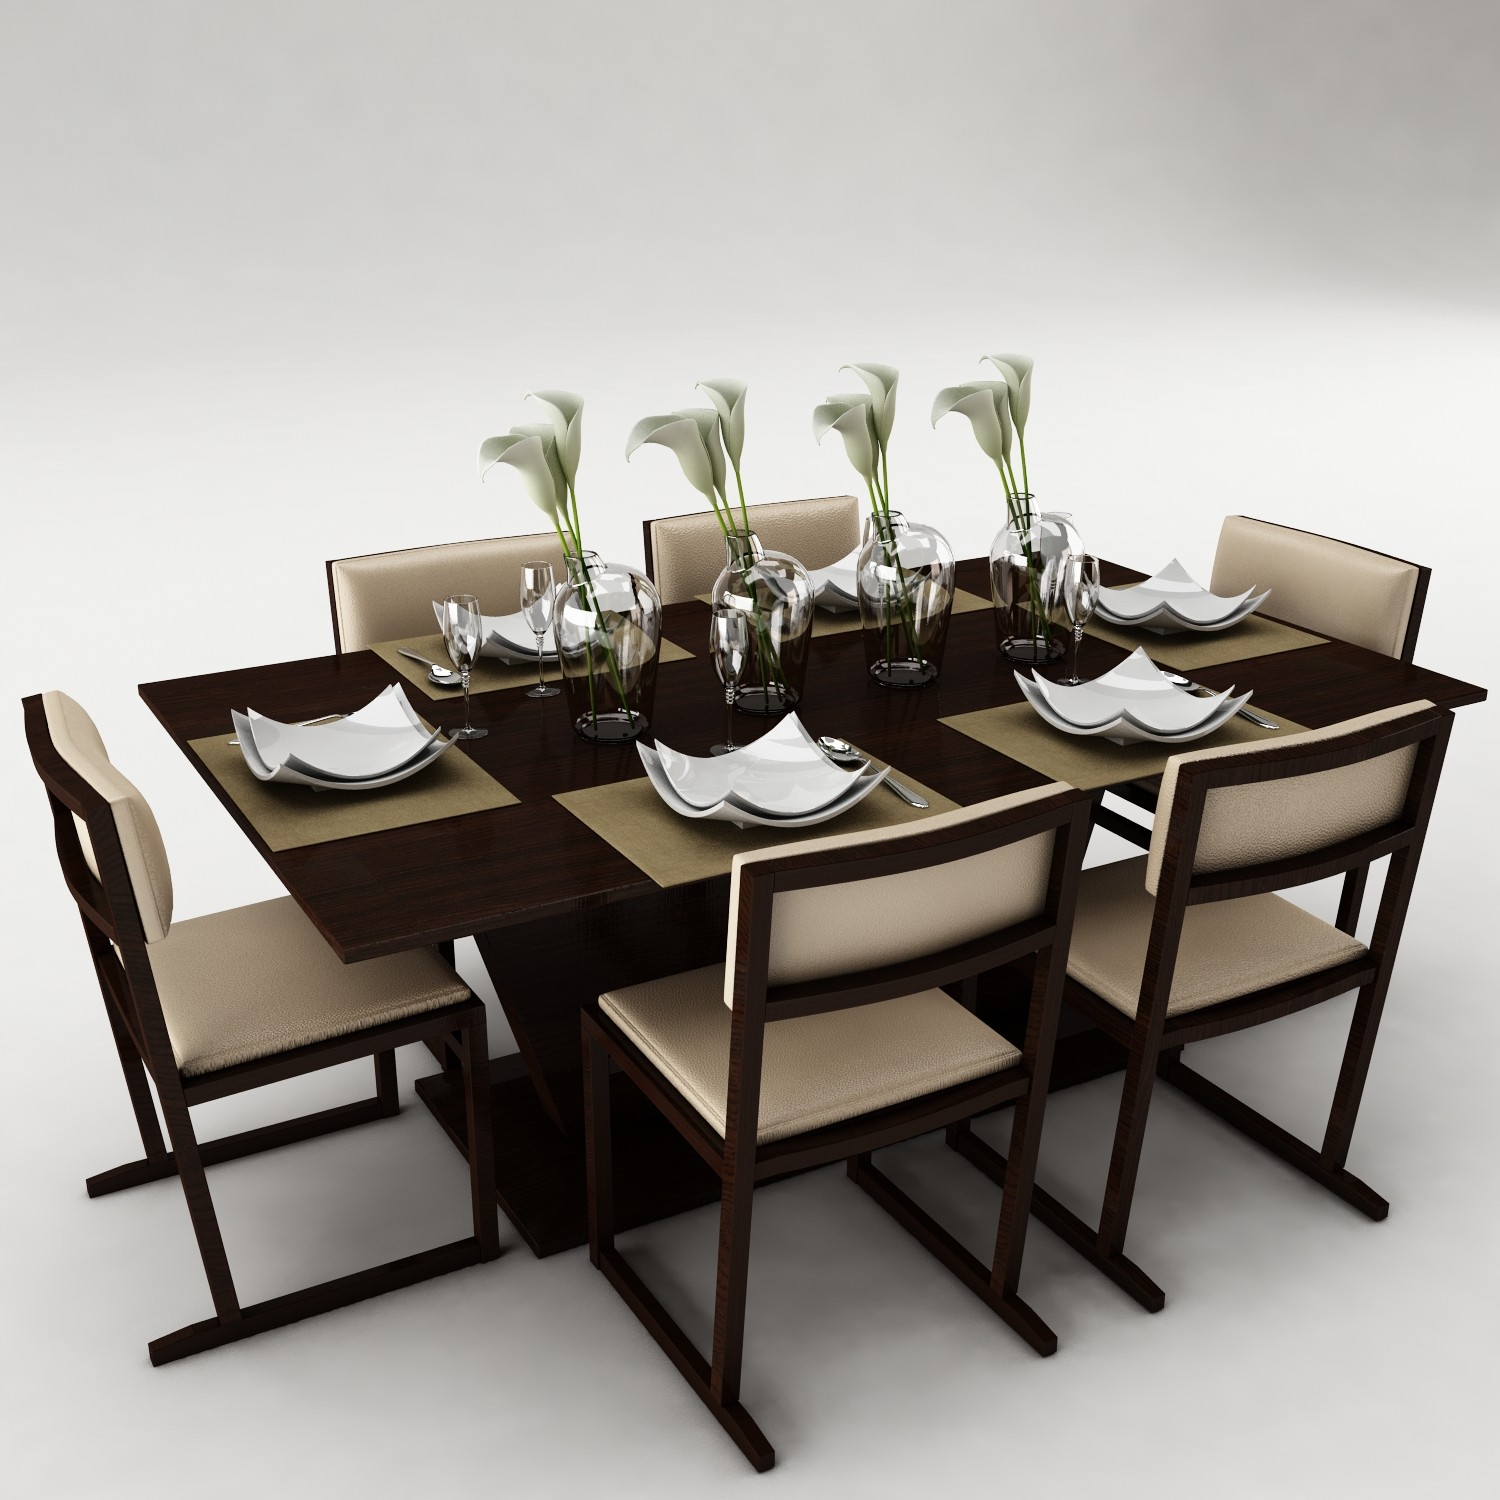 3d furniture set model for Dining table models